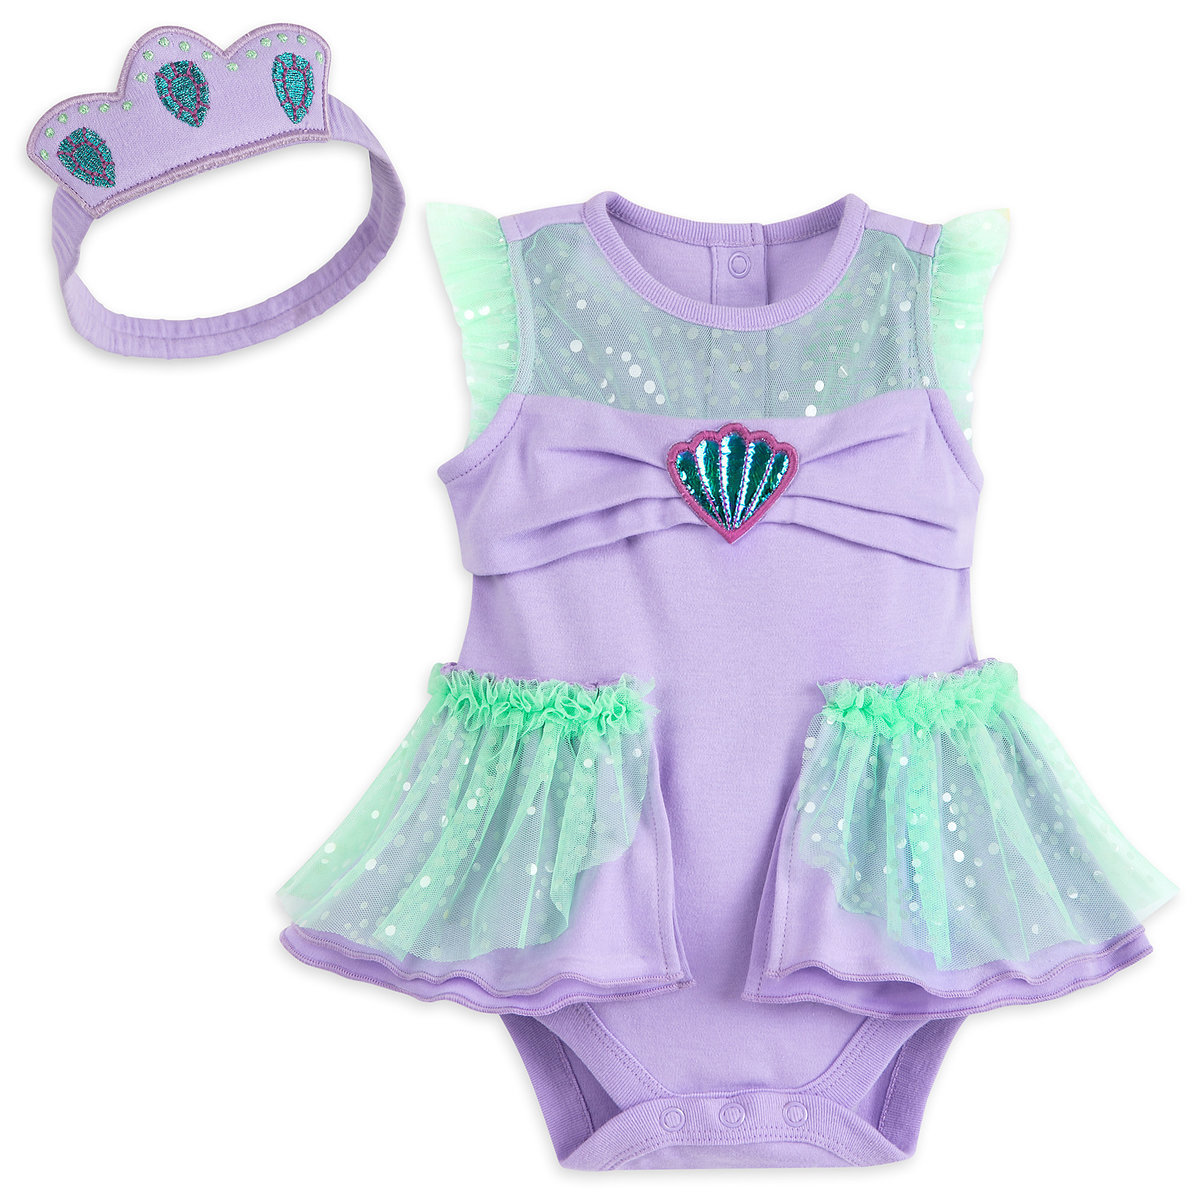 9cb0aba824 Product Image of Ariel Costume Bodysuit for Baby # 1